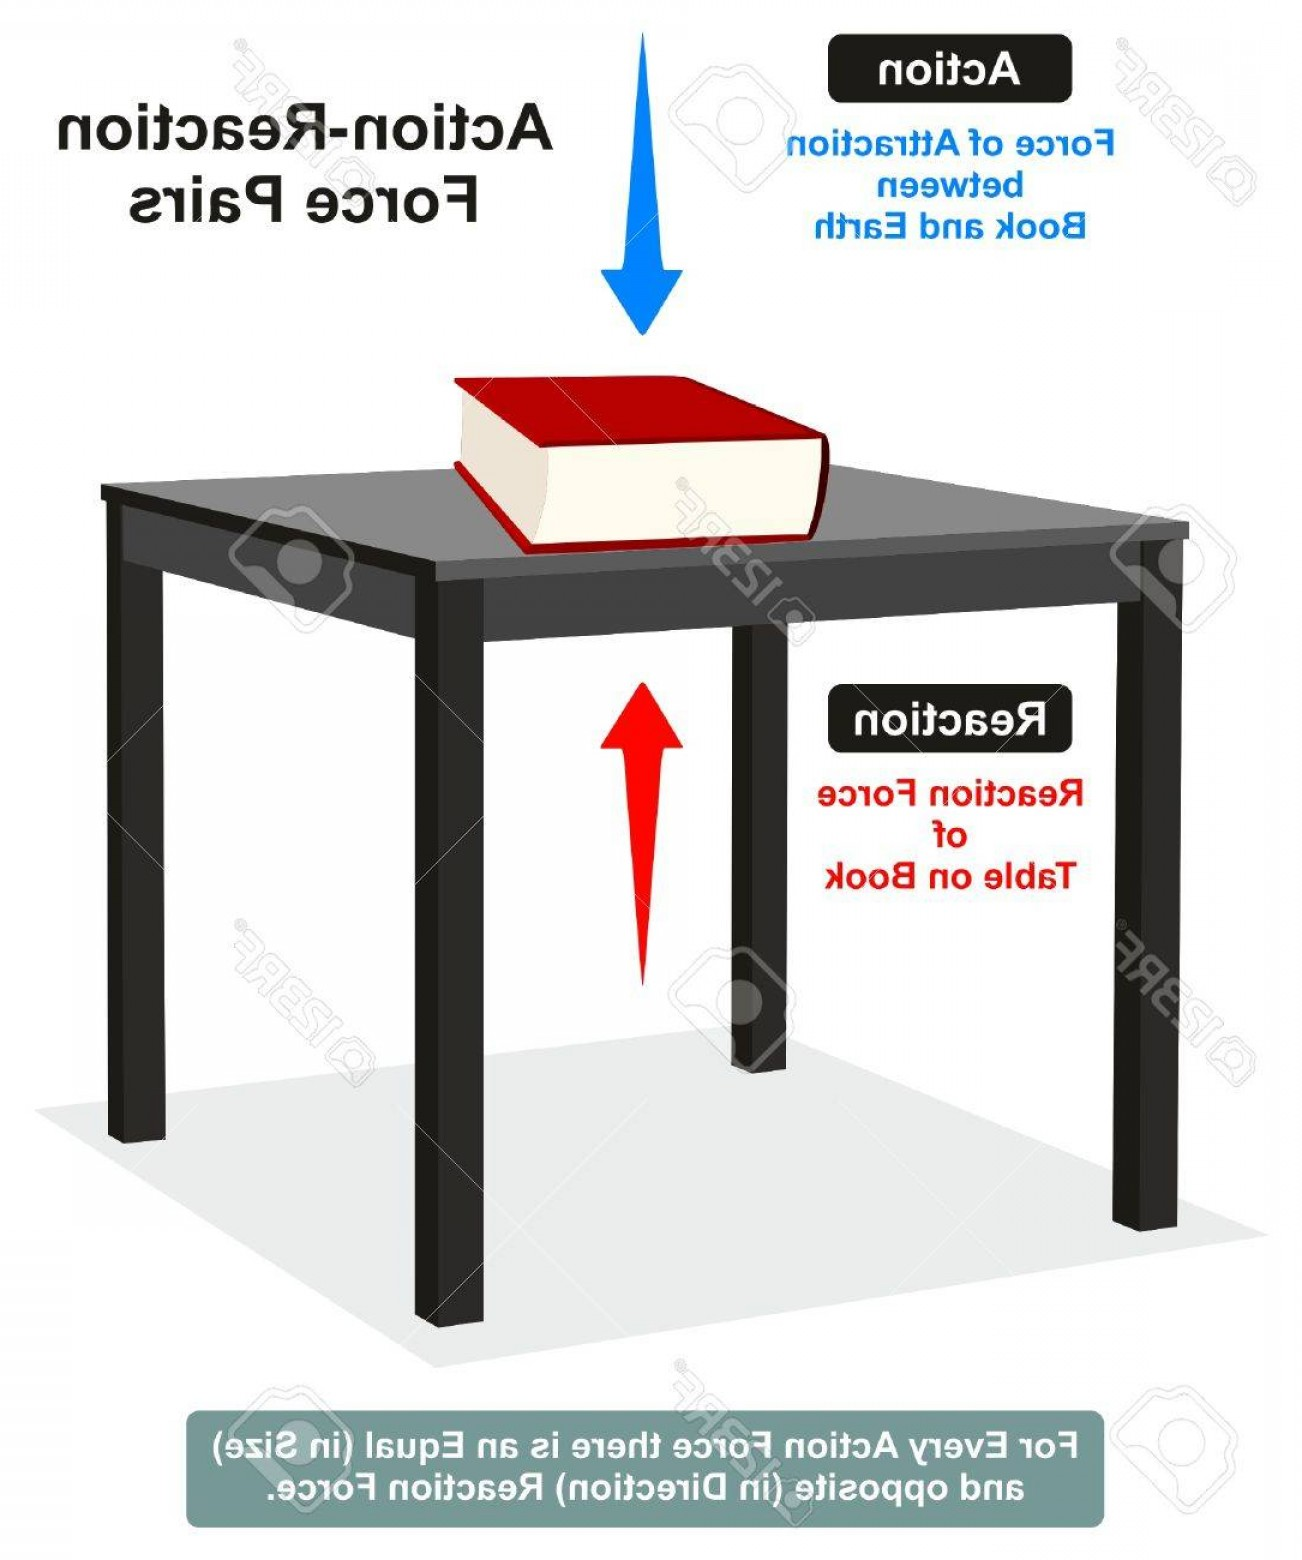 Scale Forces And Vectors: Photostock Vector Action And Reaction Physics Law Infographic Diagram With Example Of Book On Table Which Shows Both F